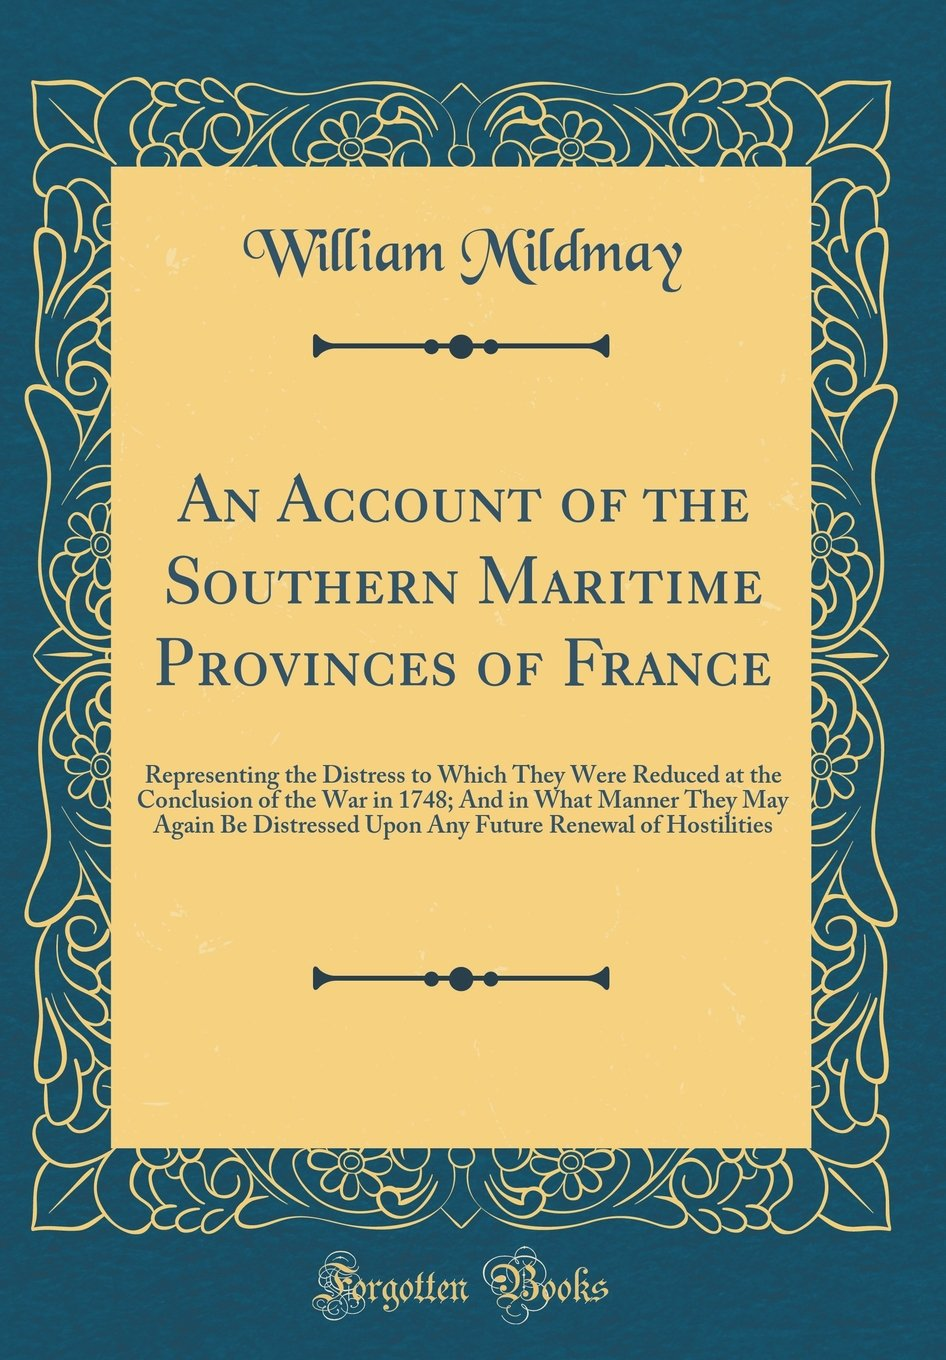 Download An Account of the Southern Maritime Provinces of France: Representing the Distress to Which They Were Reduced at the Conclusion of the War in 1748; ... Renewal of Hostilities (Classic Reprint) PDF